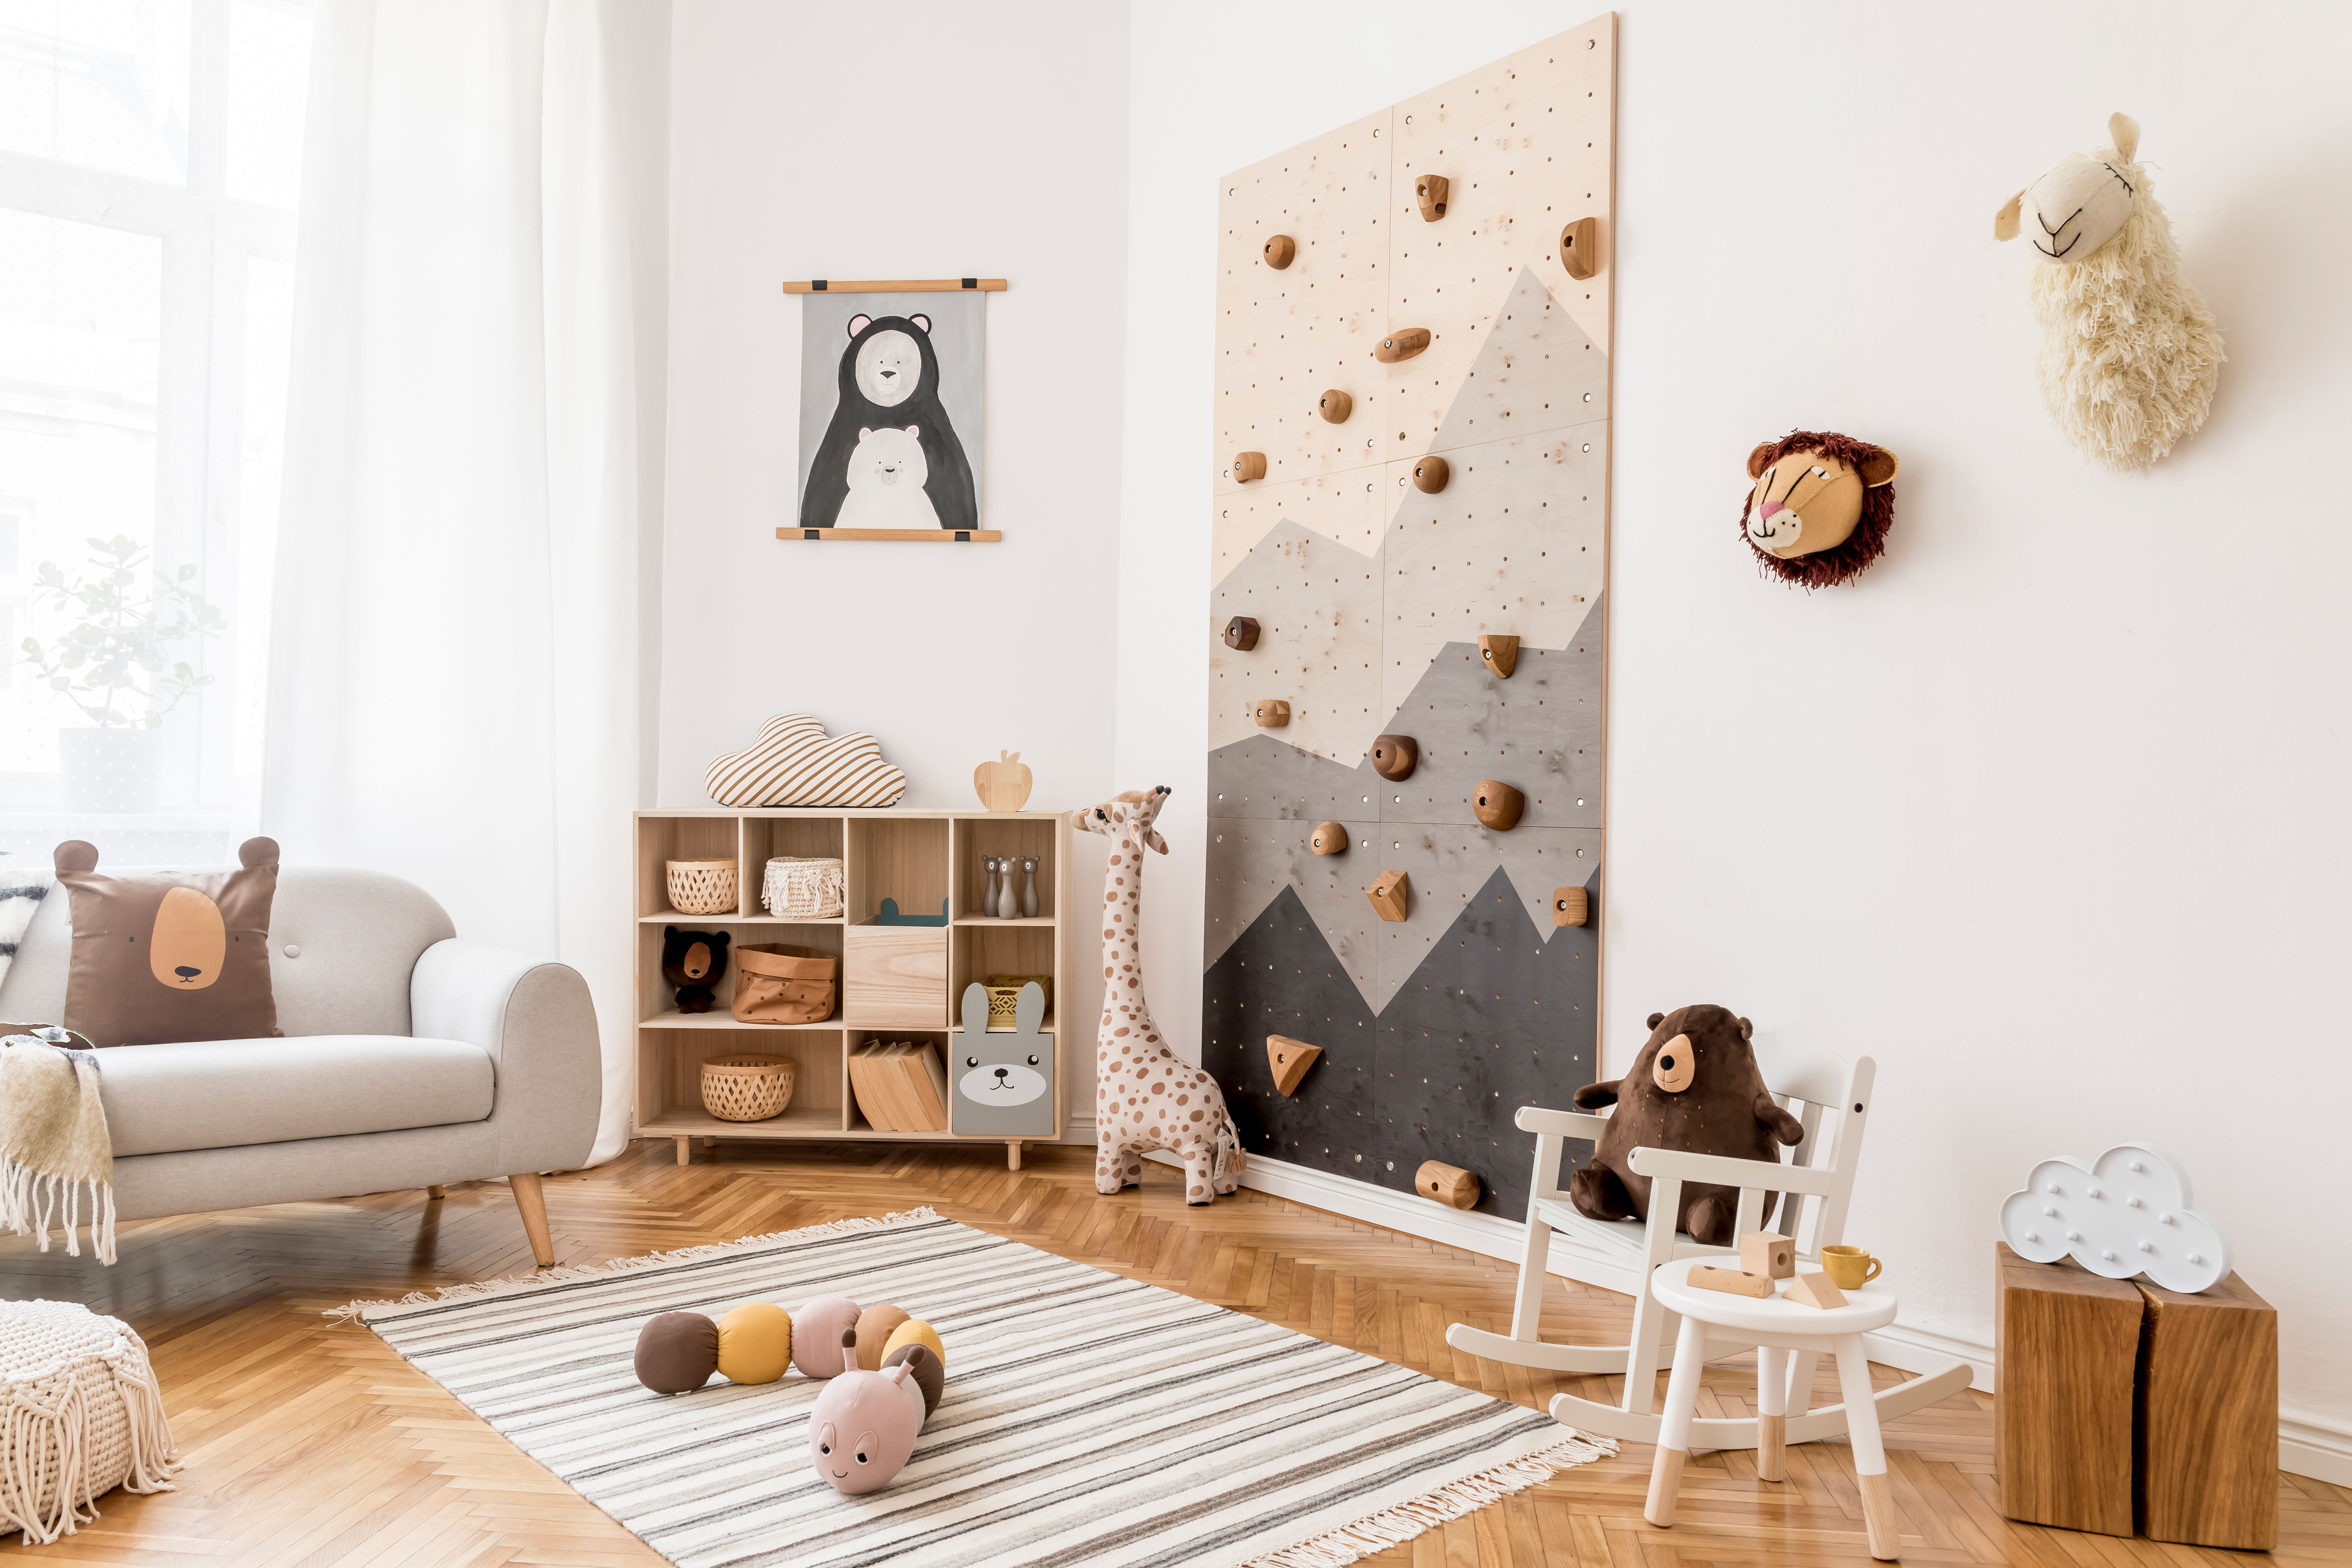 themed rooms disney inspired spaces.htm 17 adorable diy ideas for your woodland nursery  diy ideas for your woodland nursery